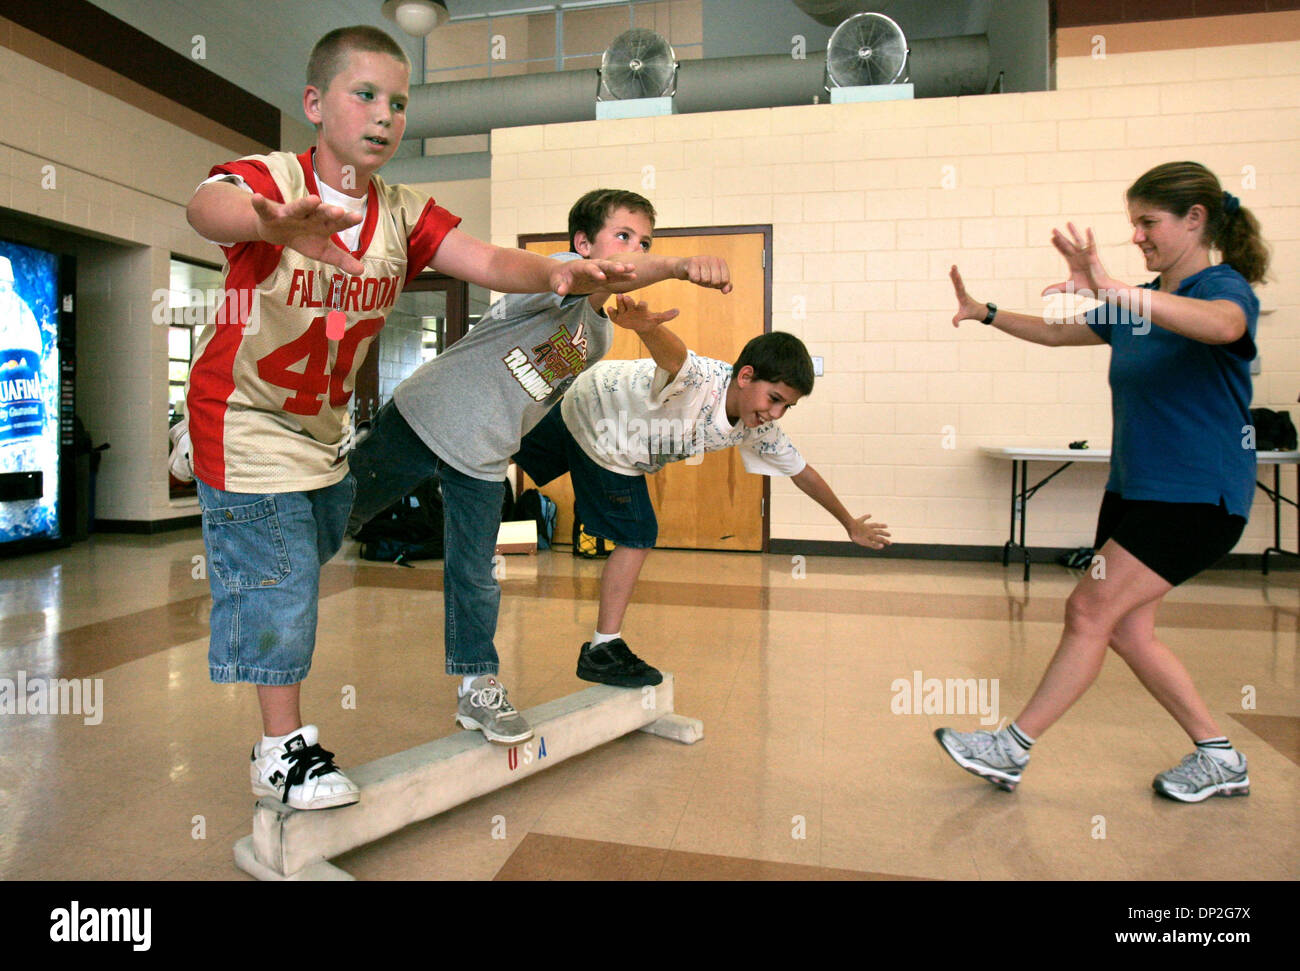 Jun 02, 2006; Fallbrook, CA, USA; Fitness Frenzy owner HEIDI RANSOM (who is running the kid's fitness program here), at right, directs kids on the balance beam. LtoR: BOSTON MENOSSI, AERIS SOUFLIS, and MARTIN ESCOBEDO. Mandatory Credit: Photo by Charlie Neuman/SDU-T/ZUMA Press. (©) Copyright 2006 by SDU-T - Stock Image